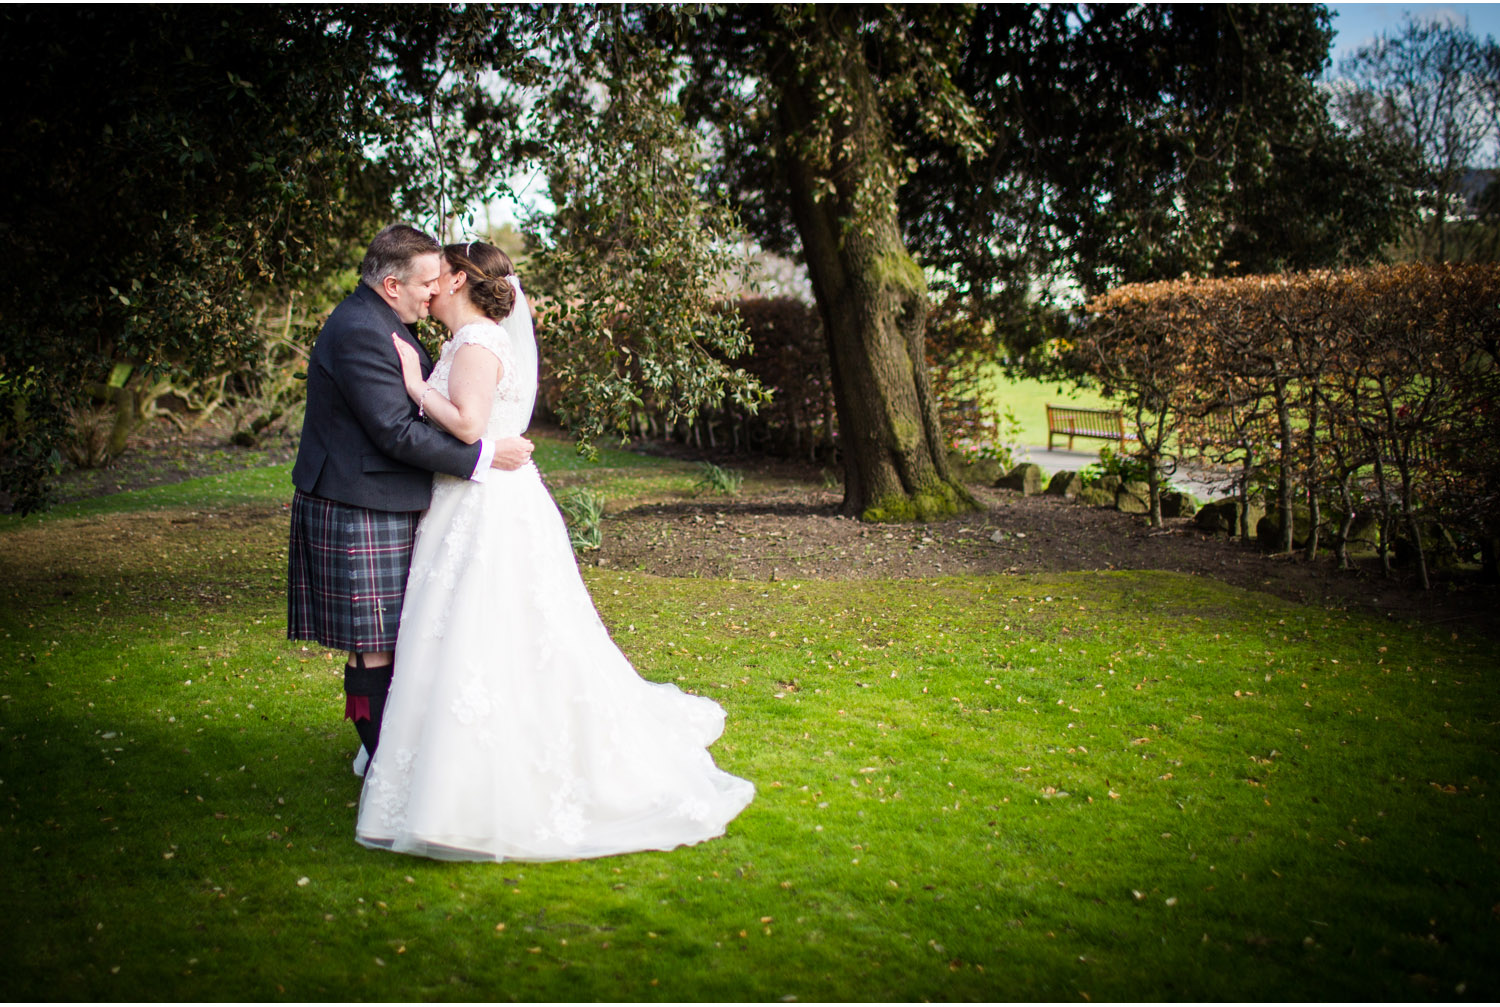 Kate and Rory's wedding sneak preview-8.jpg